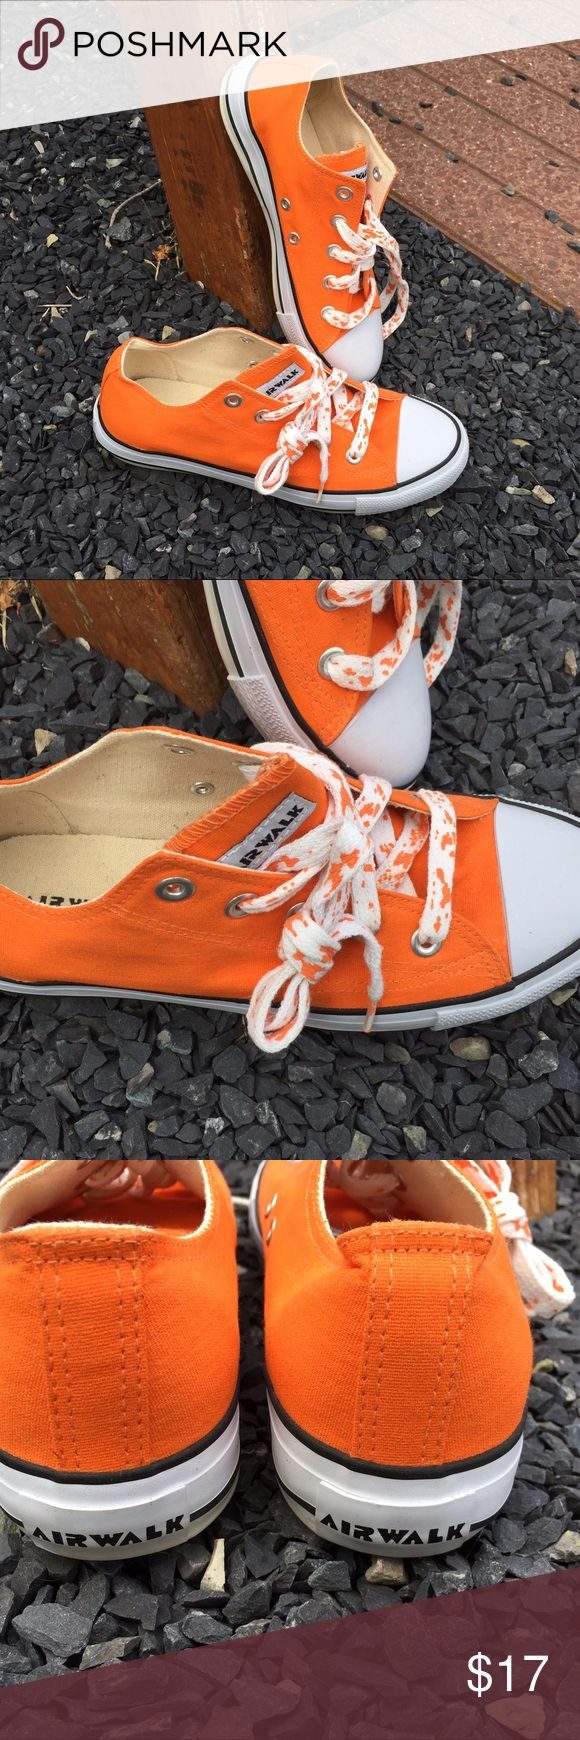 Airwalk Orange Sneakers Size 7.5 Size 7.5. Super gently preowned. Be sure to view the other items in our closet. We offer  women's, Mens and kids items in a variety of sizes. Bundle and save!! Thank you for viewing our item!! Airwalk Shoes Sneakers